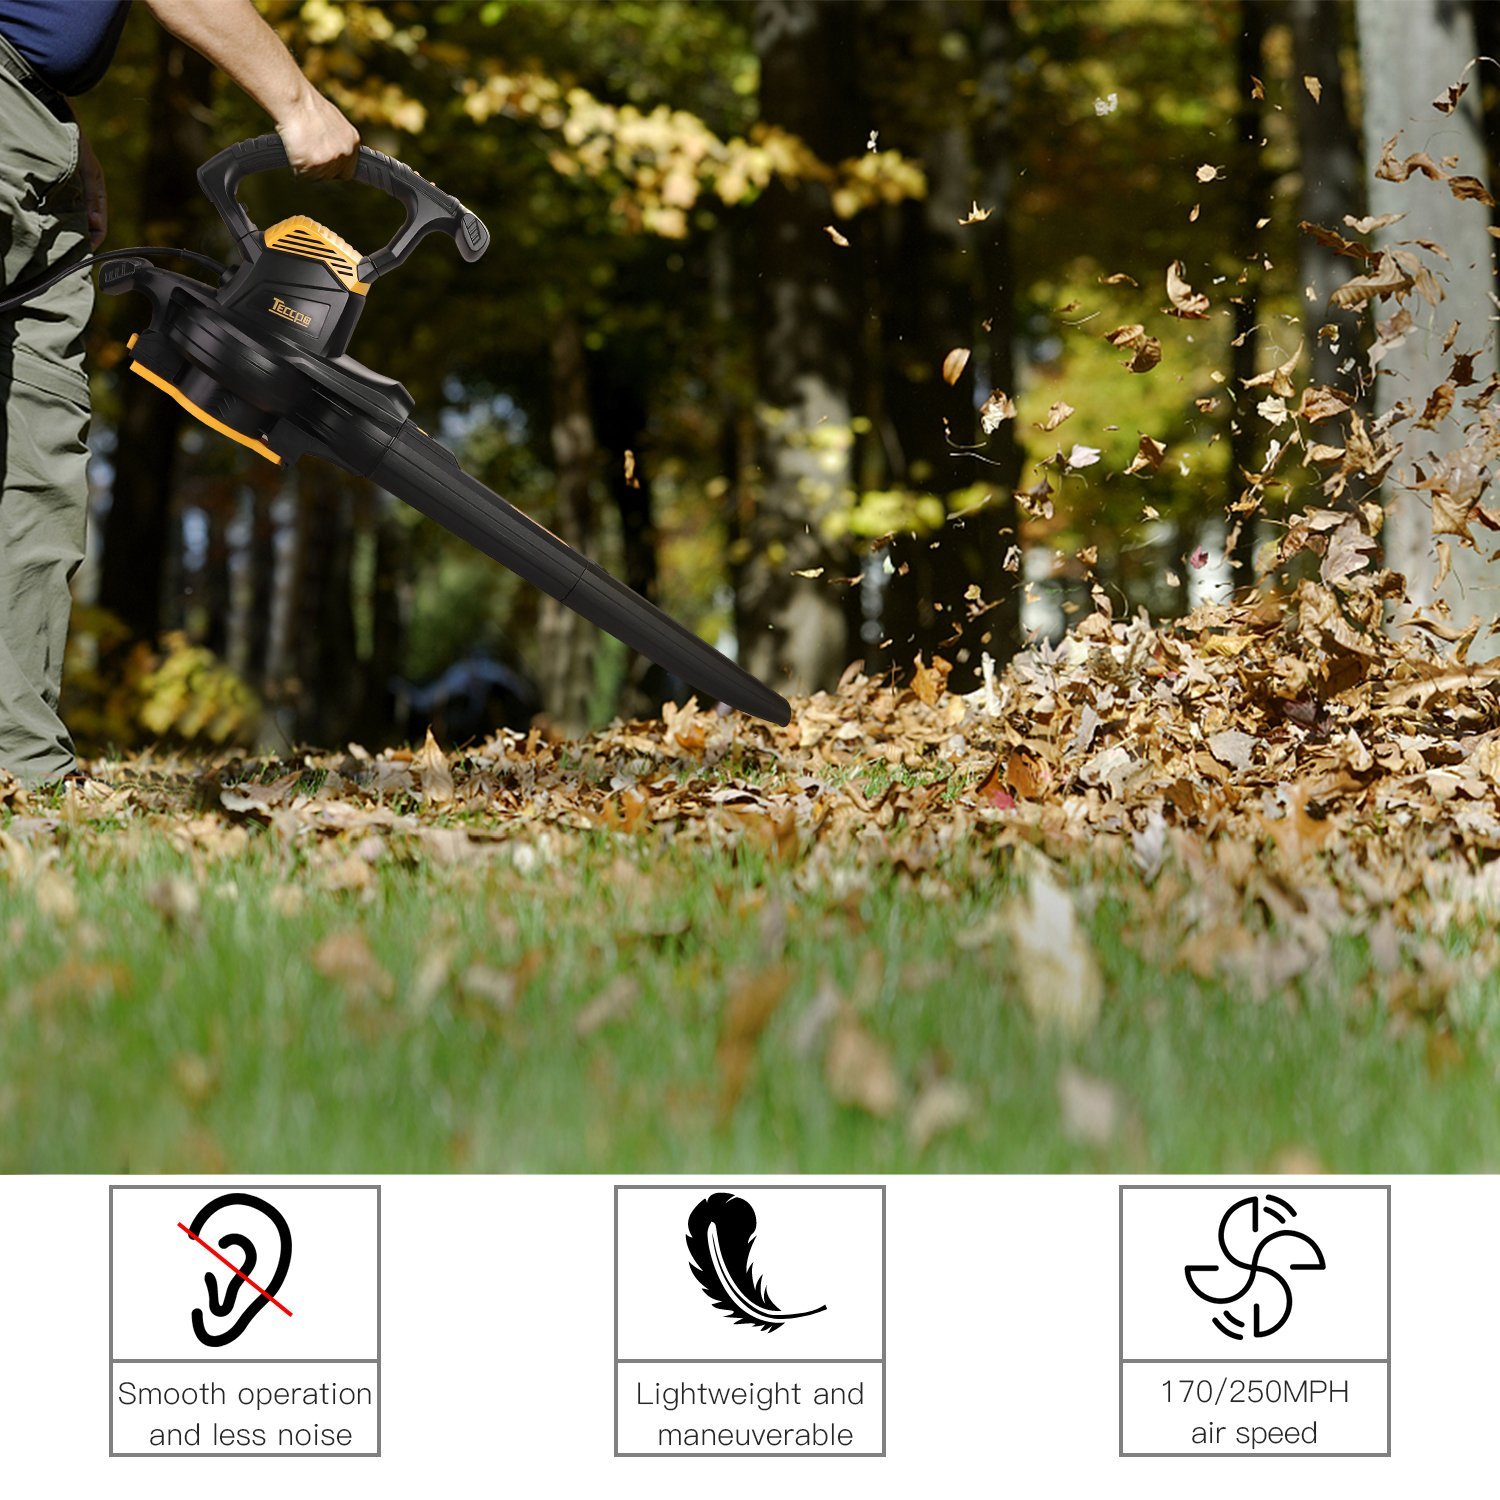 Leaf Blower Vacuum, TECCPO TABV01G 12-Amp 250MPH 410CFM 3 in 1 corded electric Two-Speed Sweeper/Vac/Mulcher, Plastic Impeller Metal Blade, Ideal for Lawn and Garden by TECCPO (Image #6)